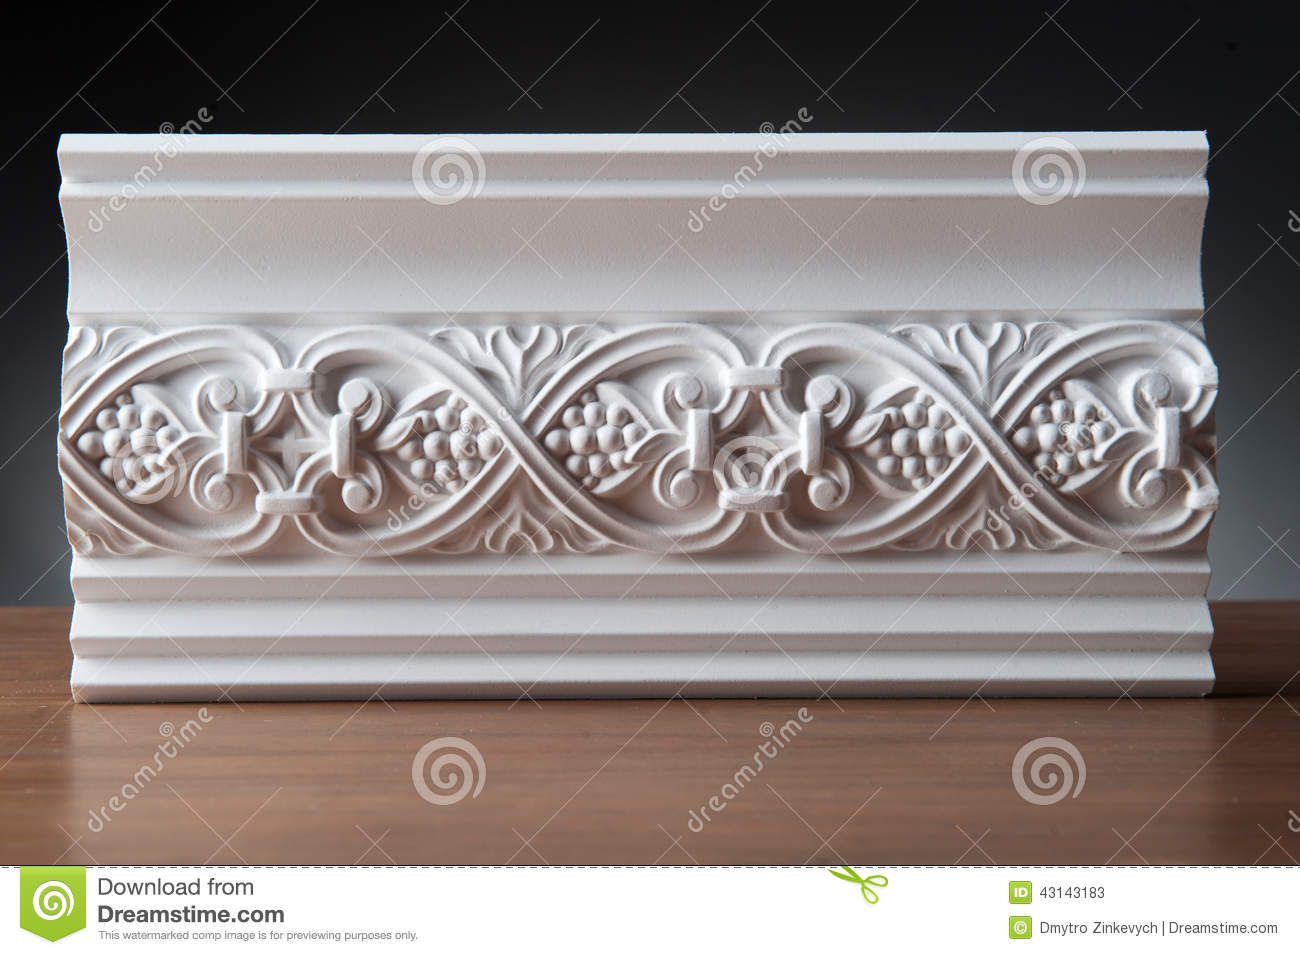 Elements Of Interior Design And Decoration white elements of interior decoration, wall design stock photo